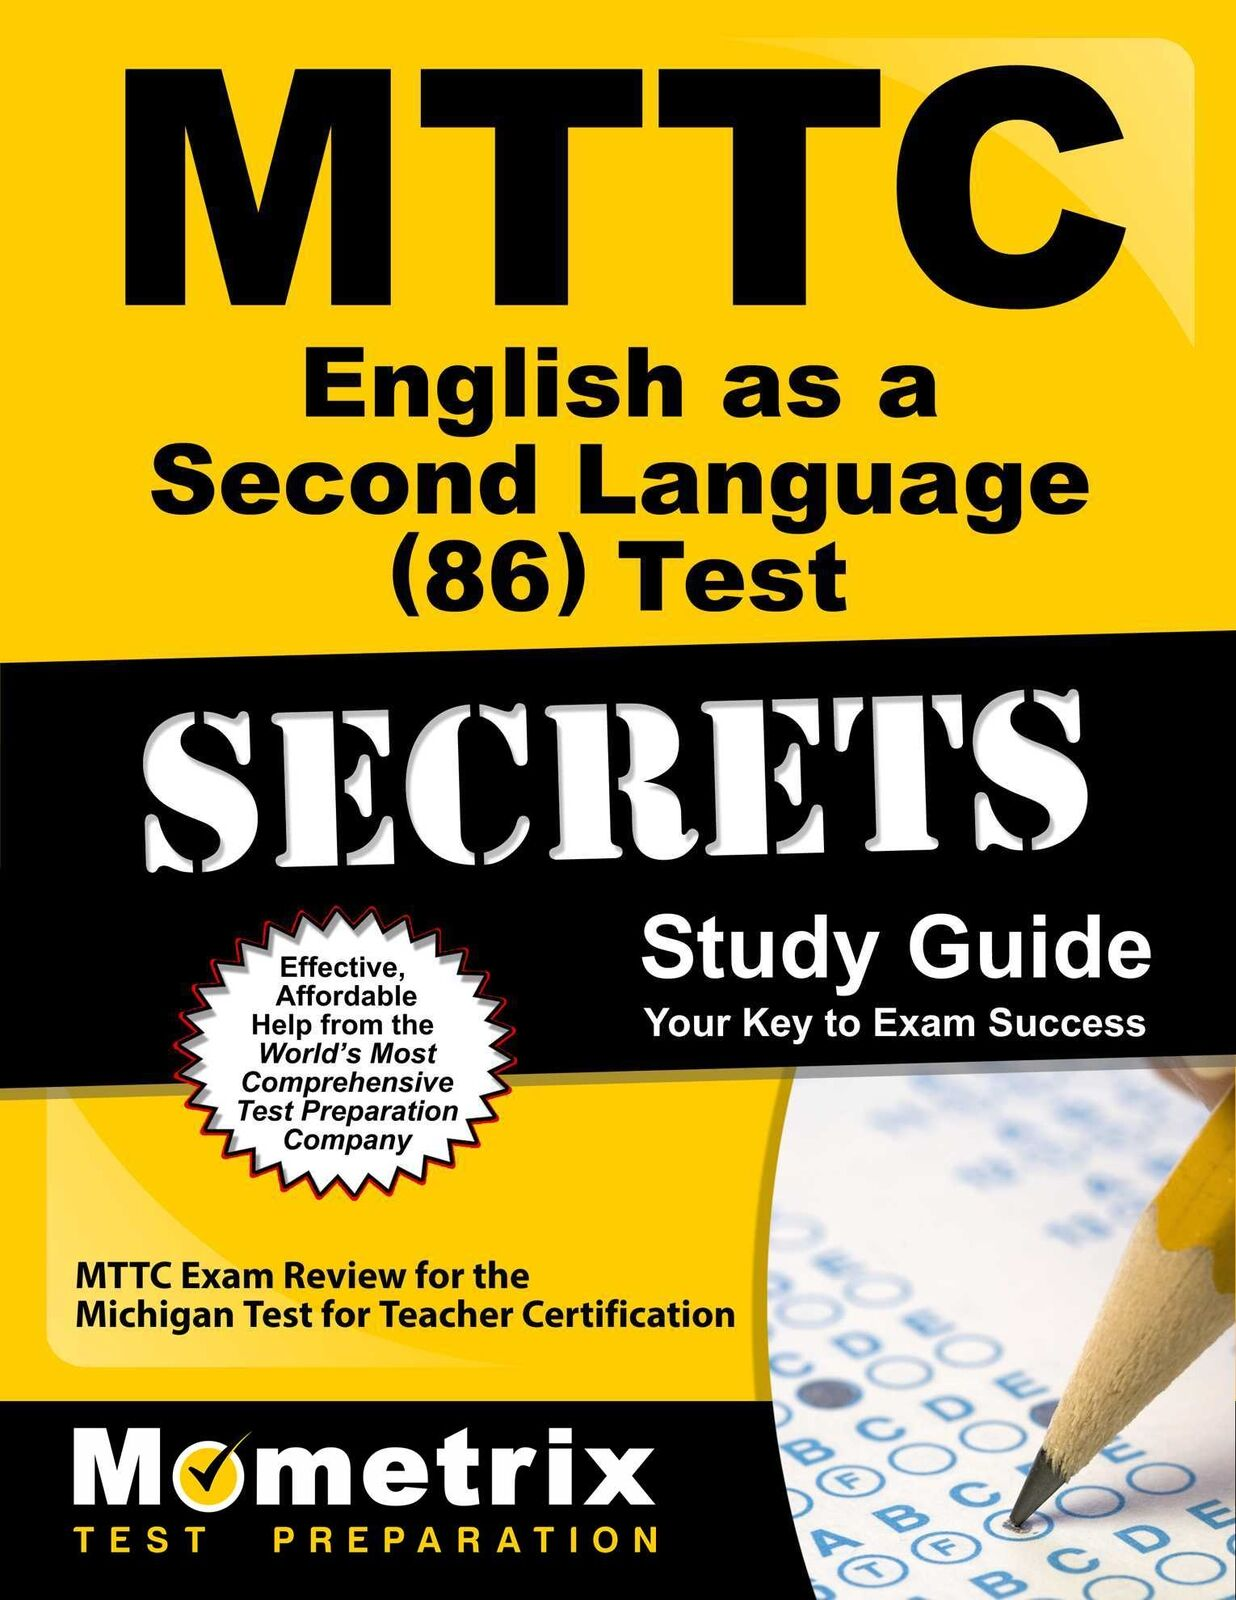 Mttc english as a second language 86 test secrets mttc exam picture 1 of 1 1betcityfo Image collections